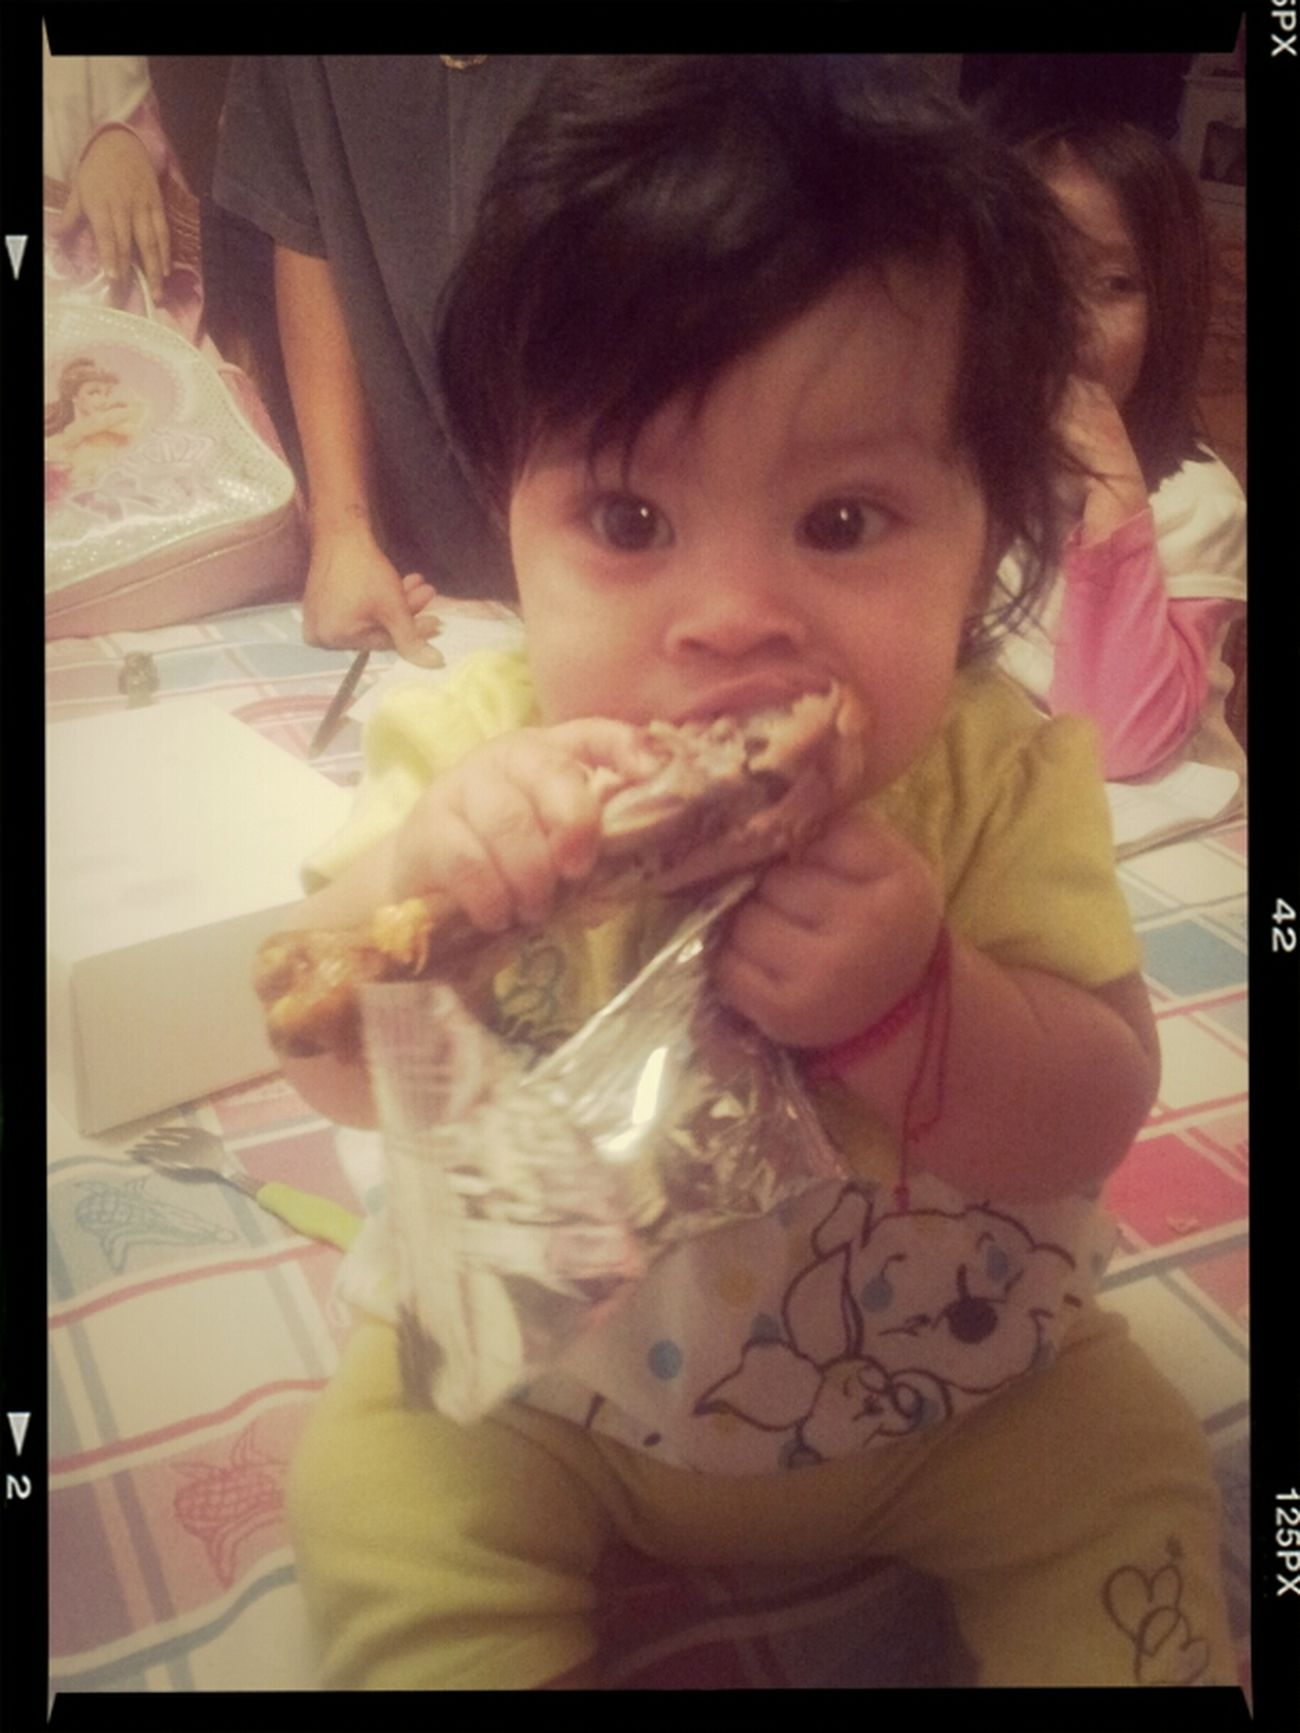 Lol my lil girl eating some pollo c: